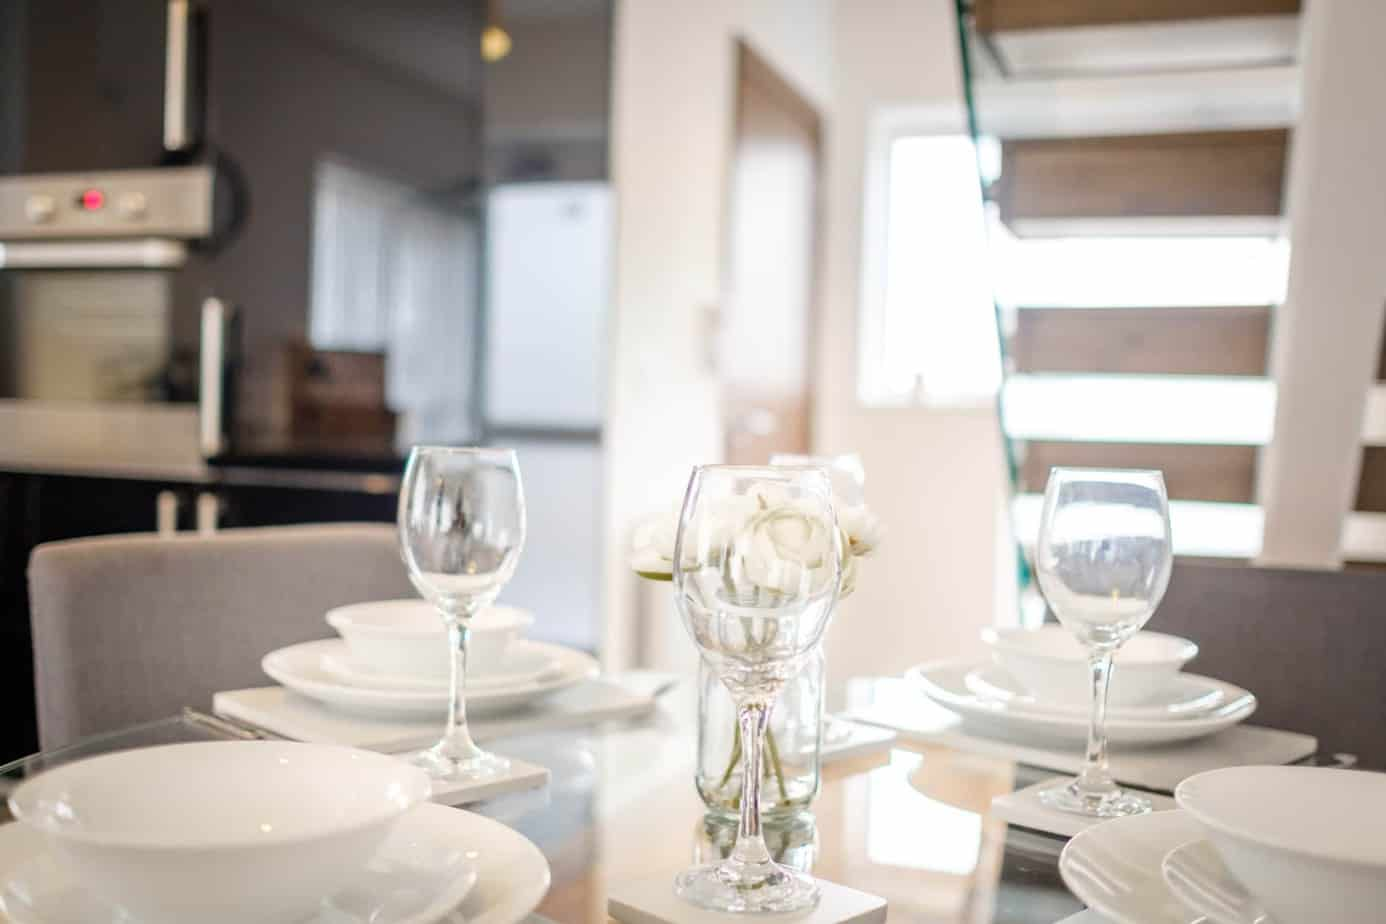 Tailored Stays grand central cambridge serviced apartment dining space